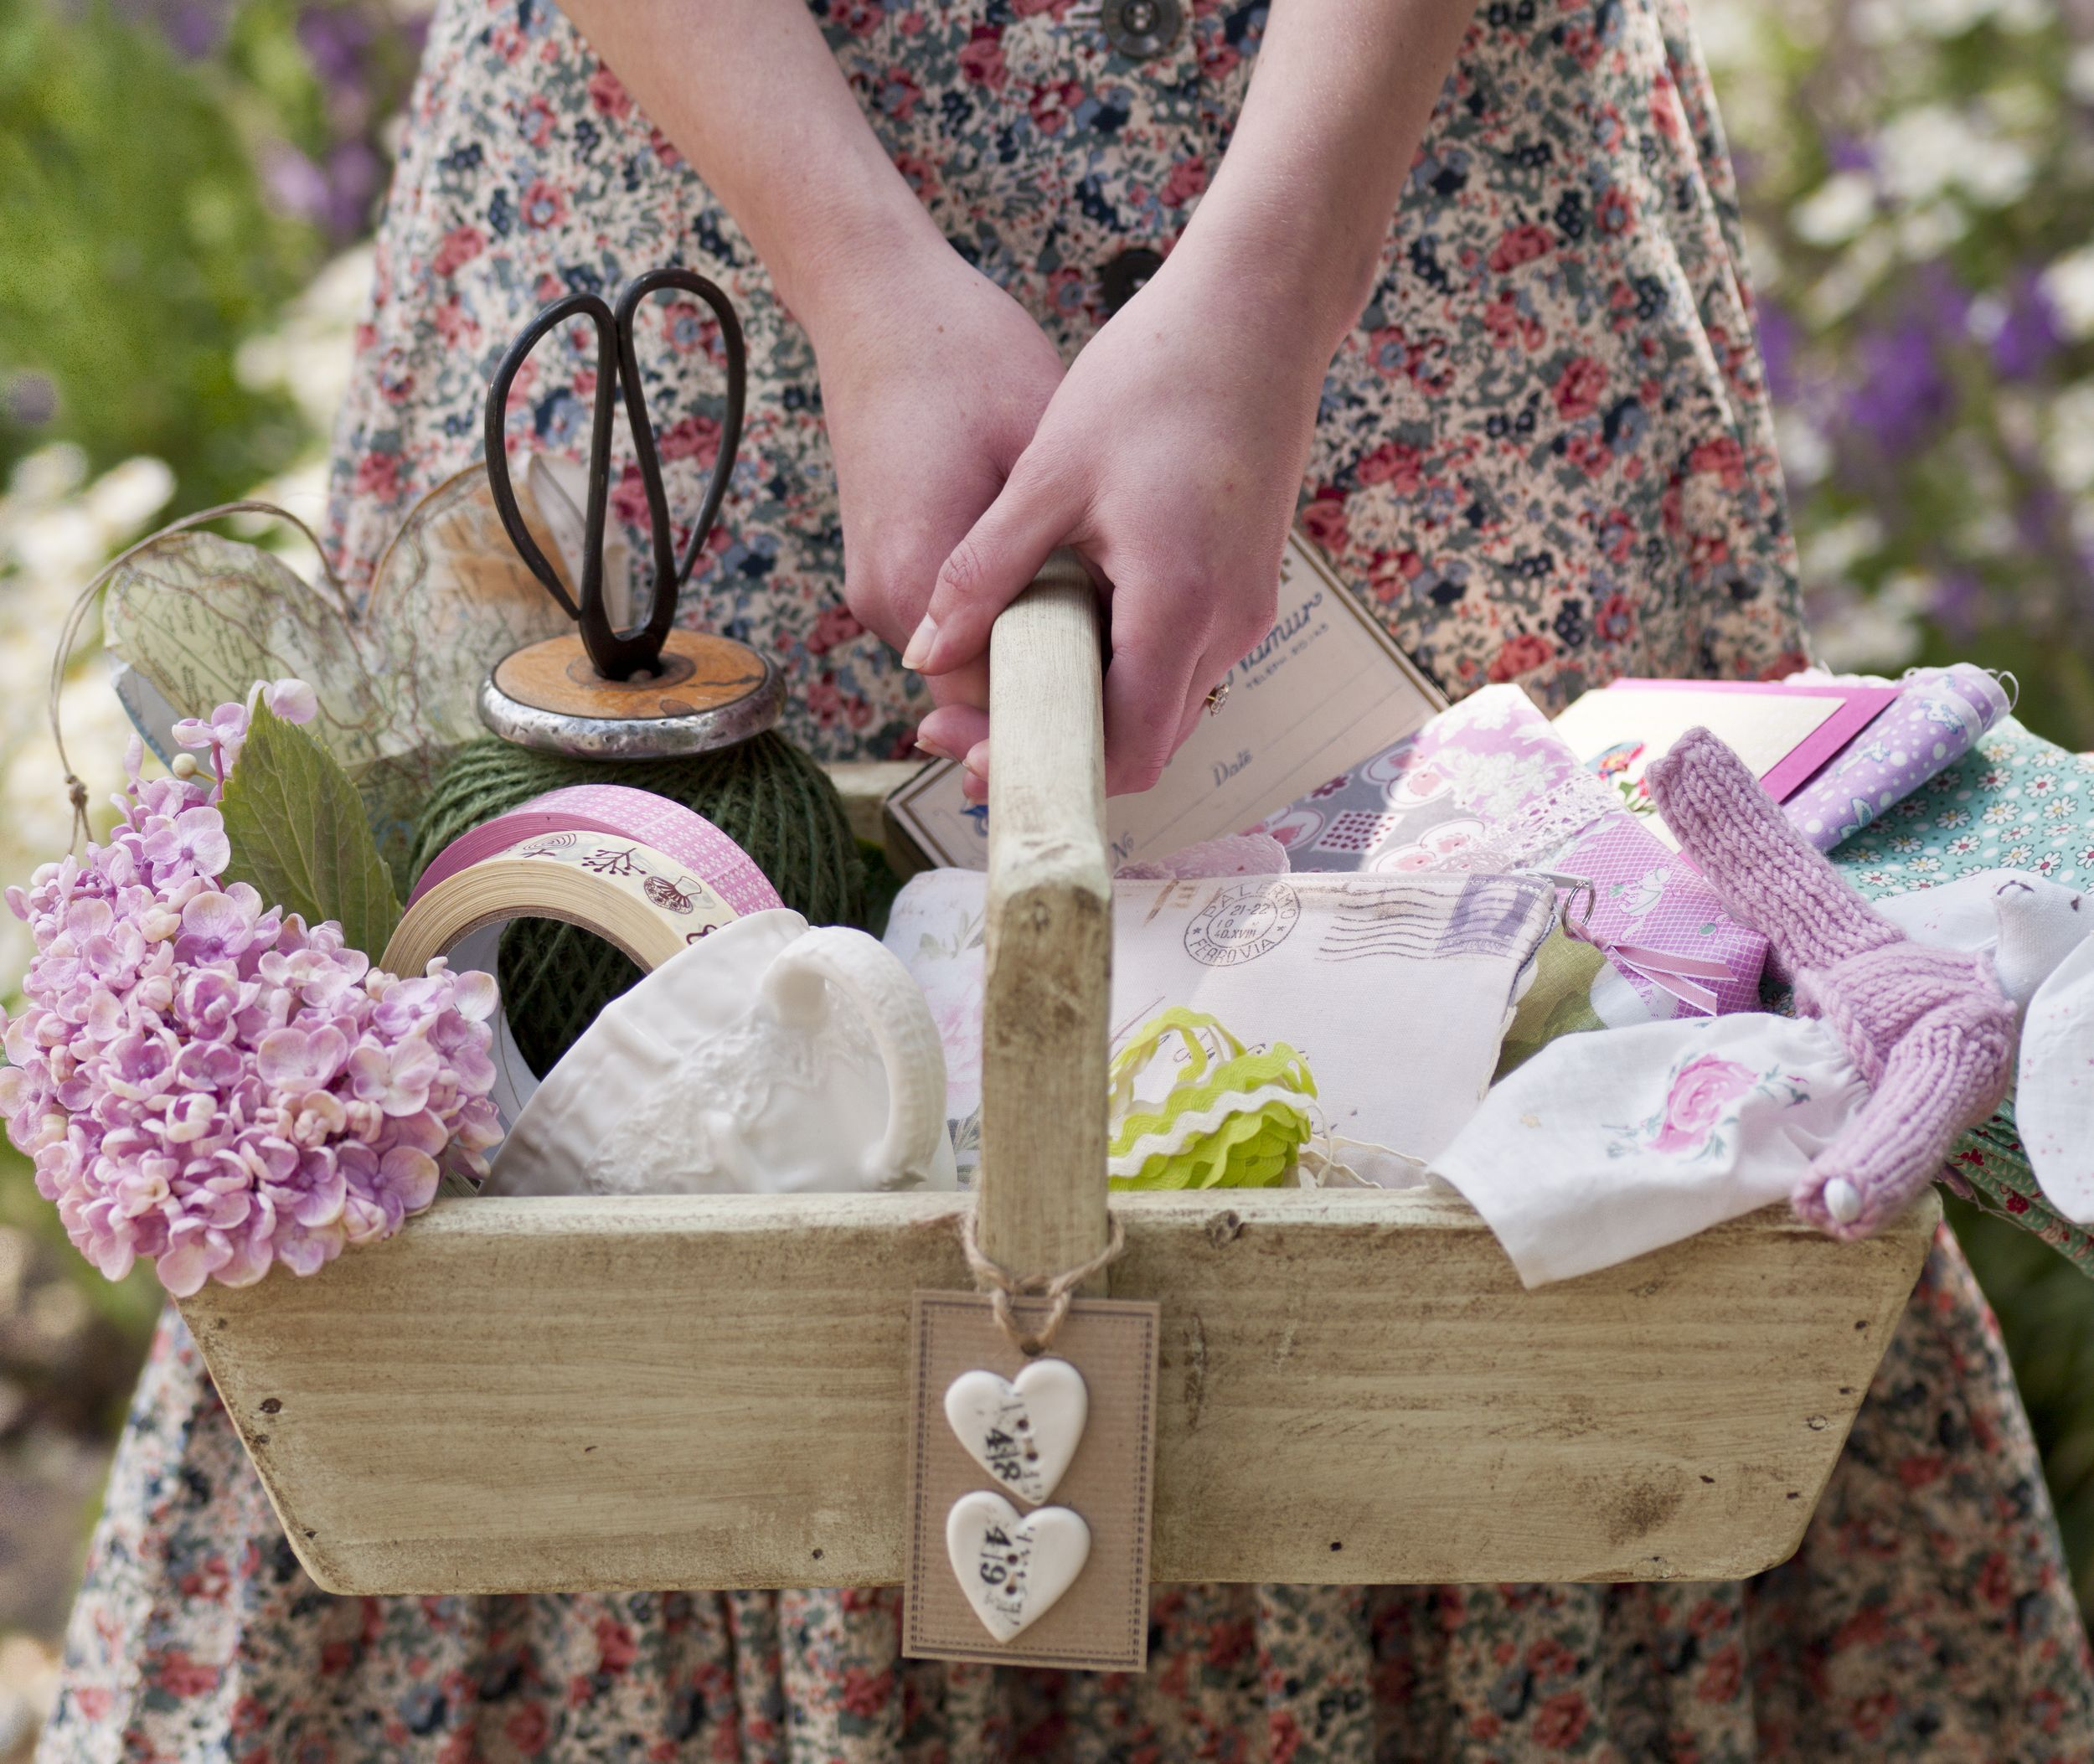 countryliving fair projects crafts gift ideas diy crafts living spring